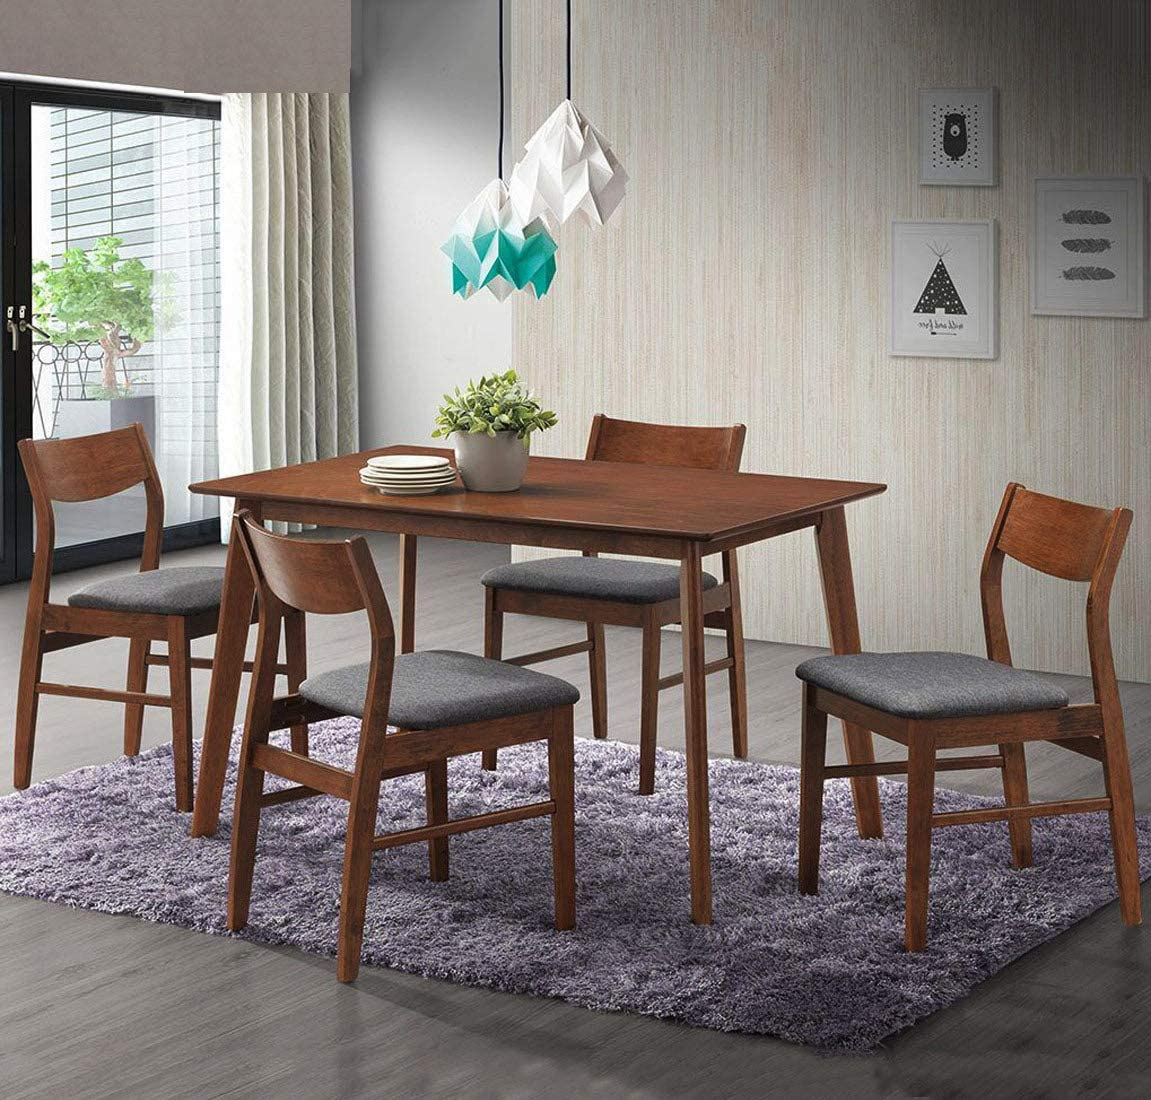 Dporticus 5-Piece Kitchen Dining Wooden and Dedication Selling Sets Table